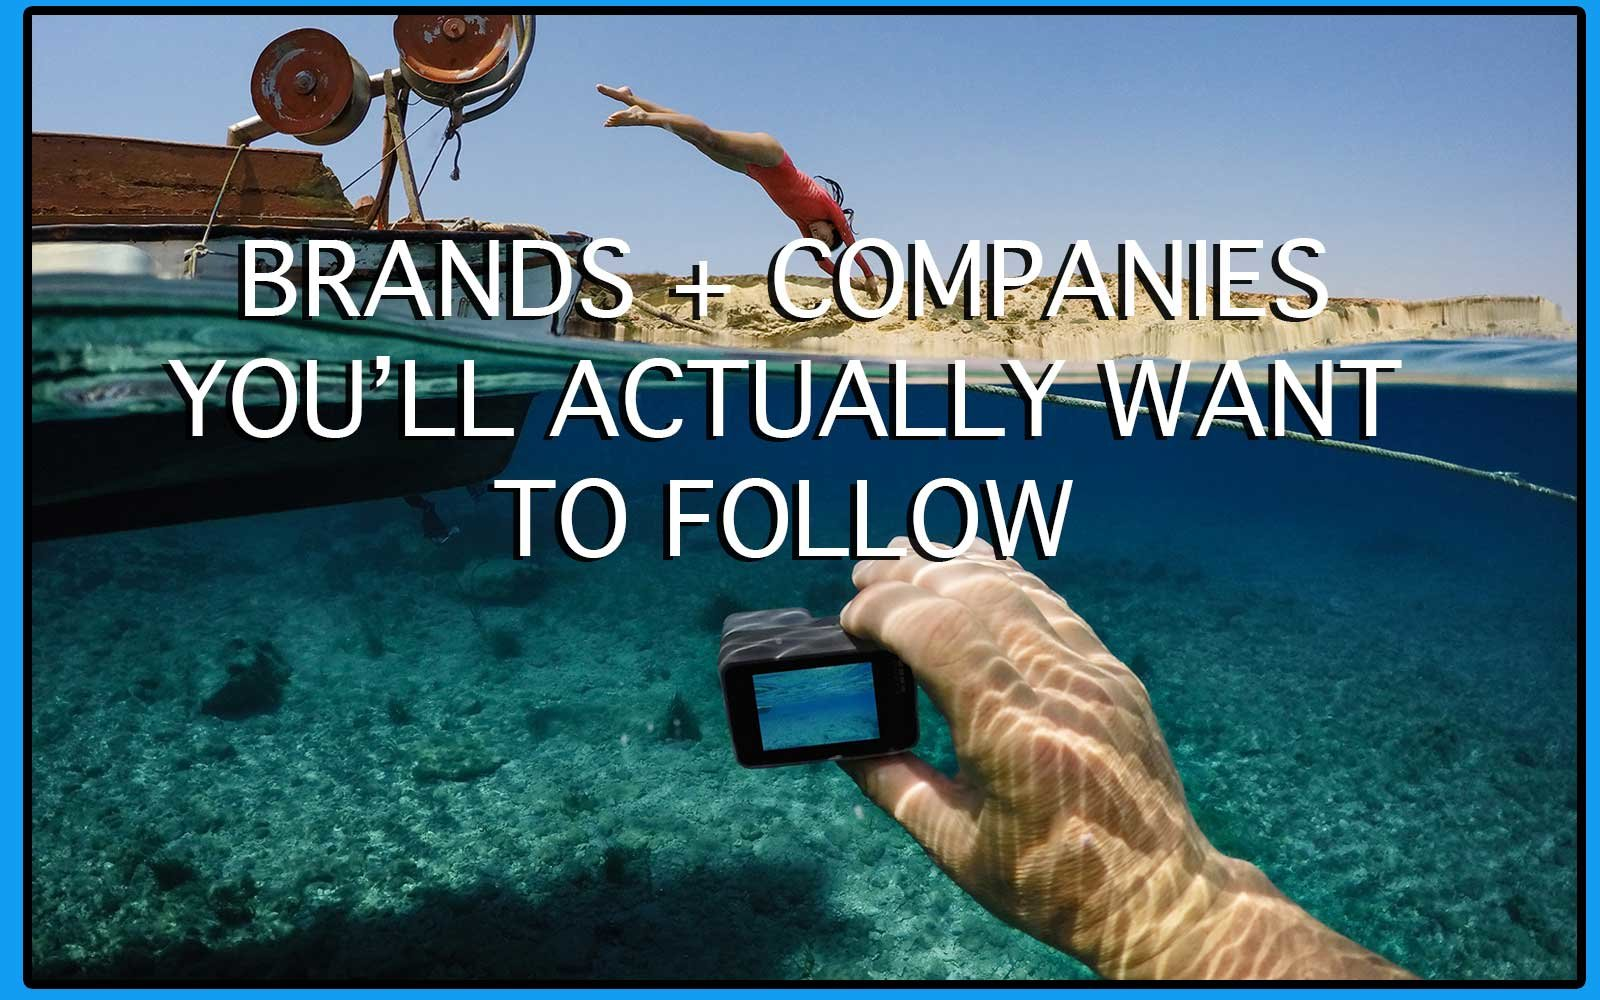 BRANDS + COMPANIES YOU'LL ACTUALLY WANT TO FOLLOW